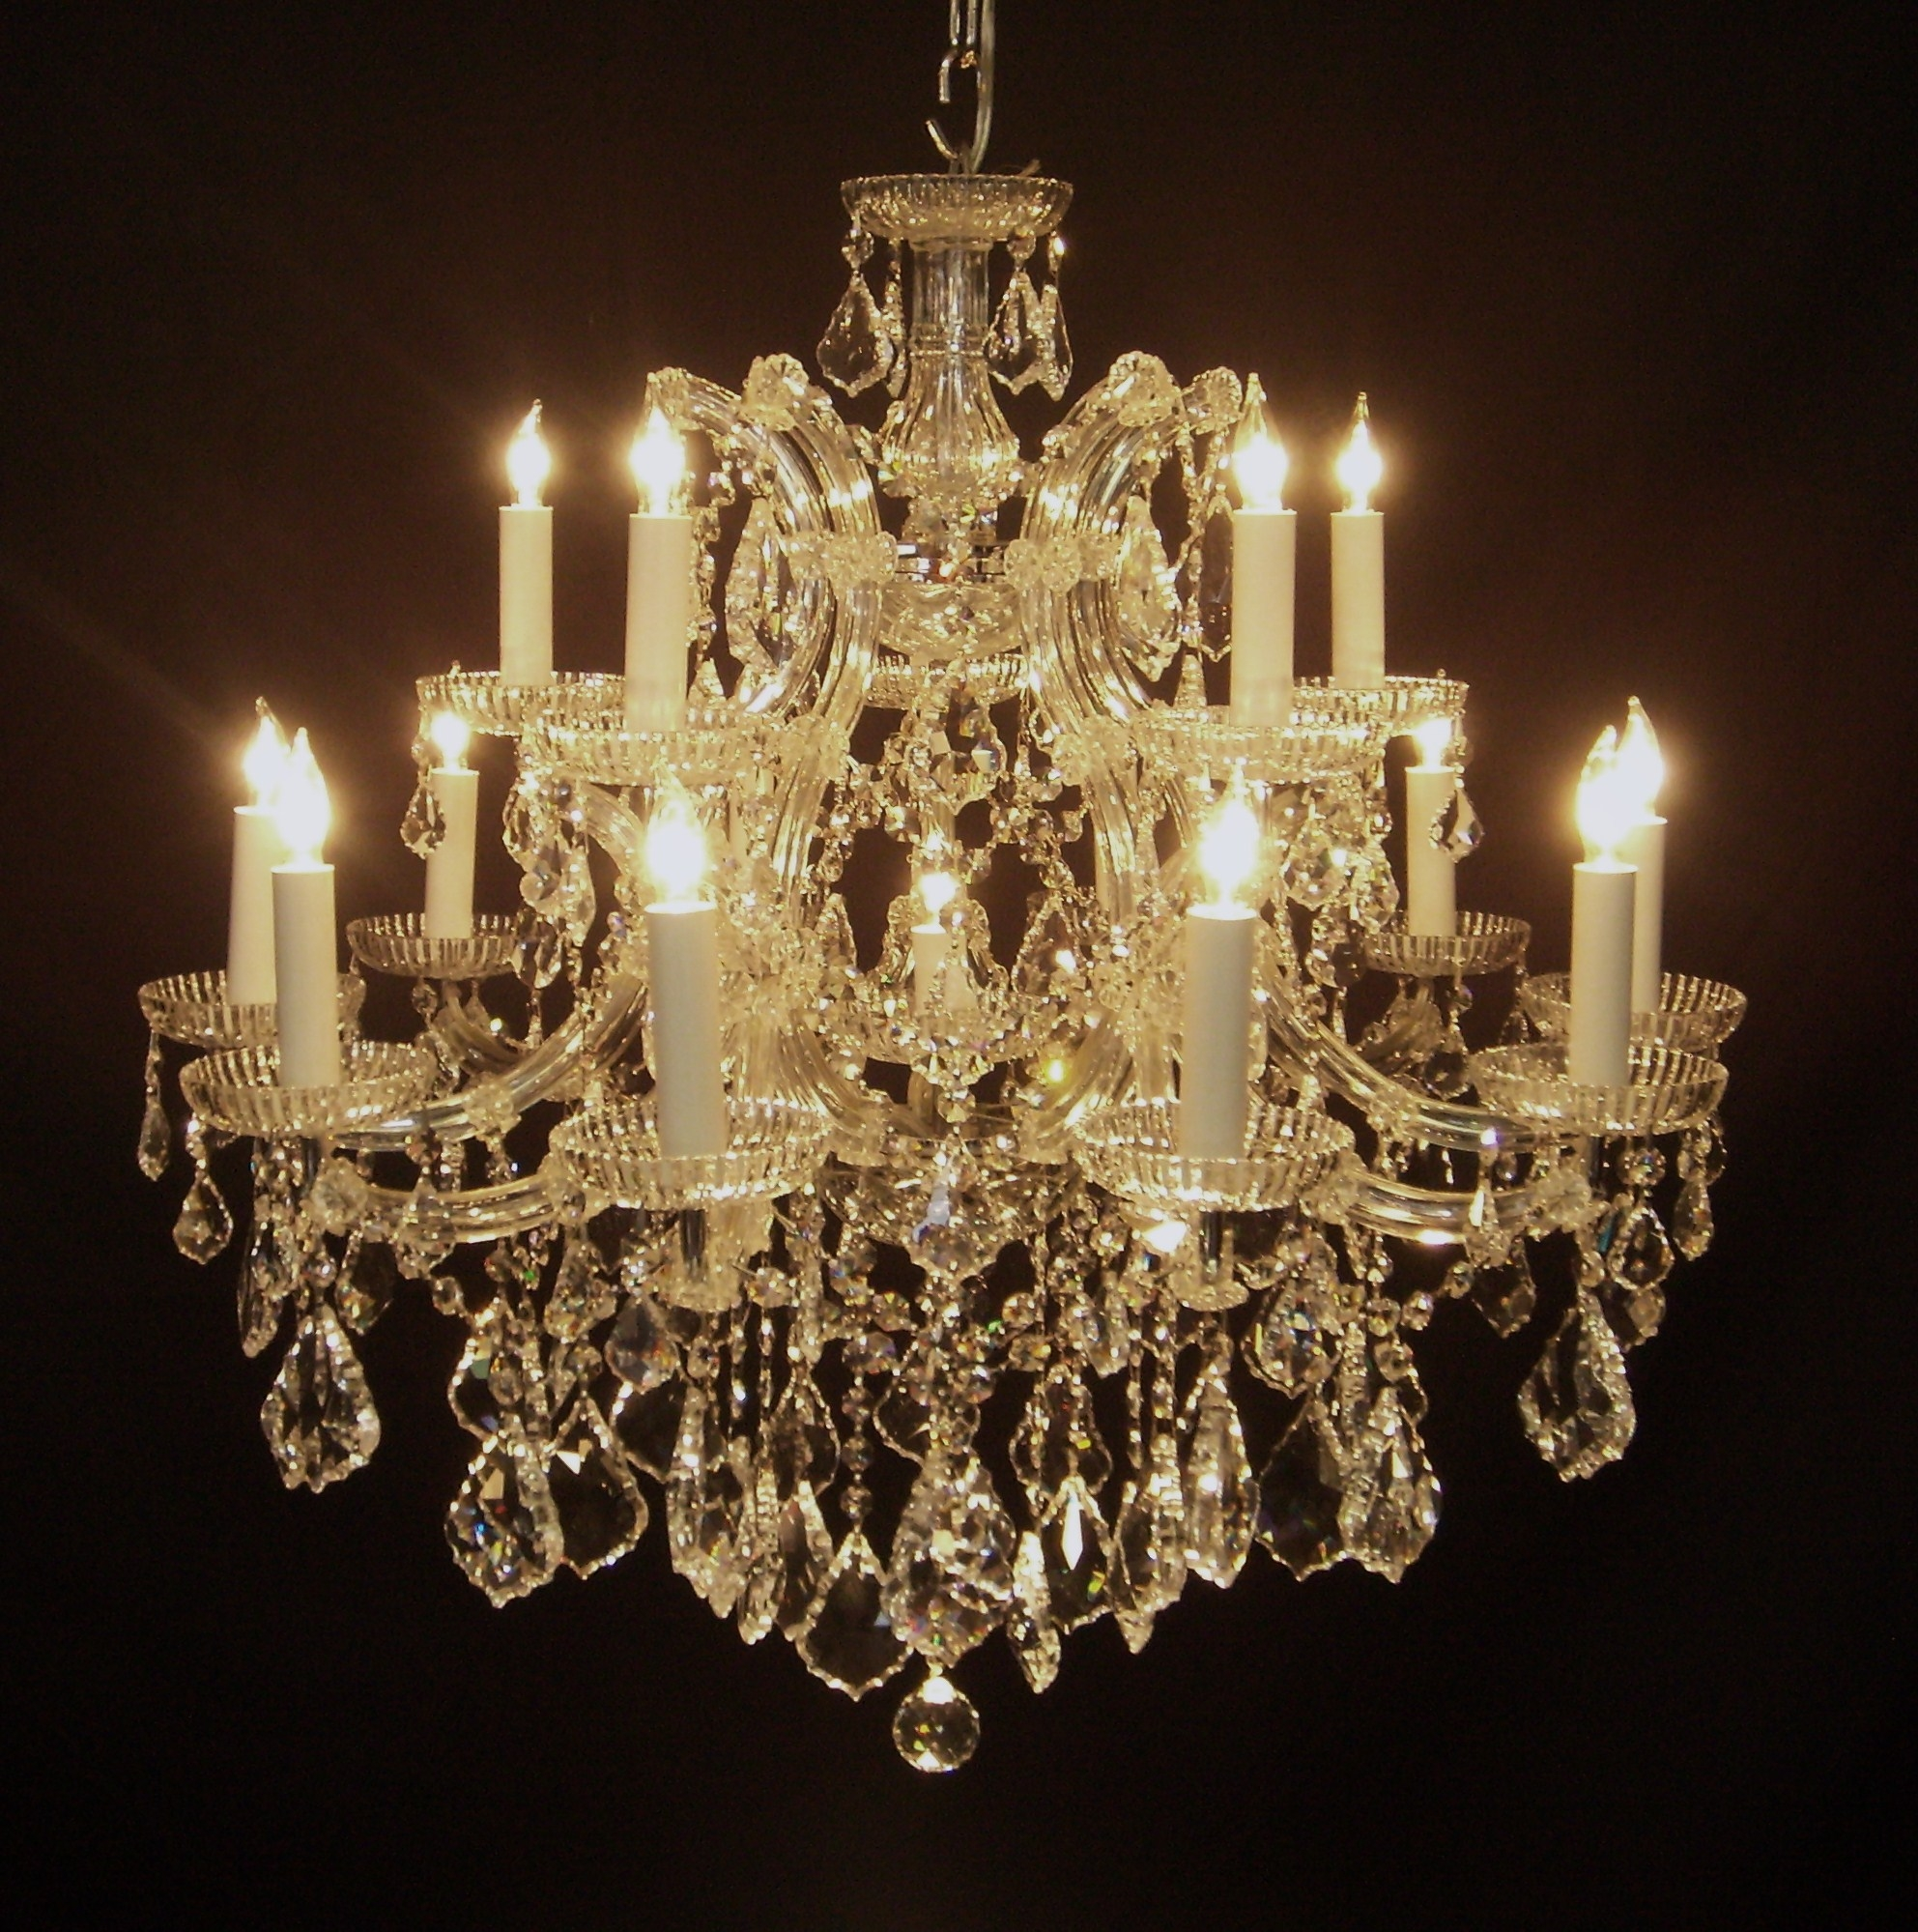 The Italian Chandelier Regarding Italian Chandeliers Style (Image 15 of 15)